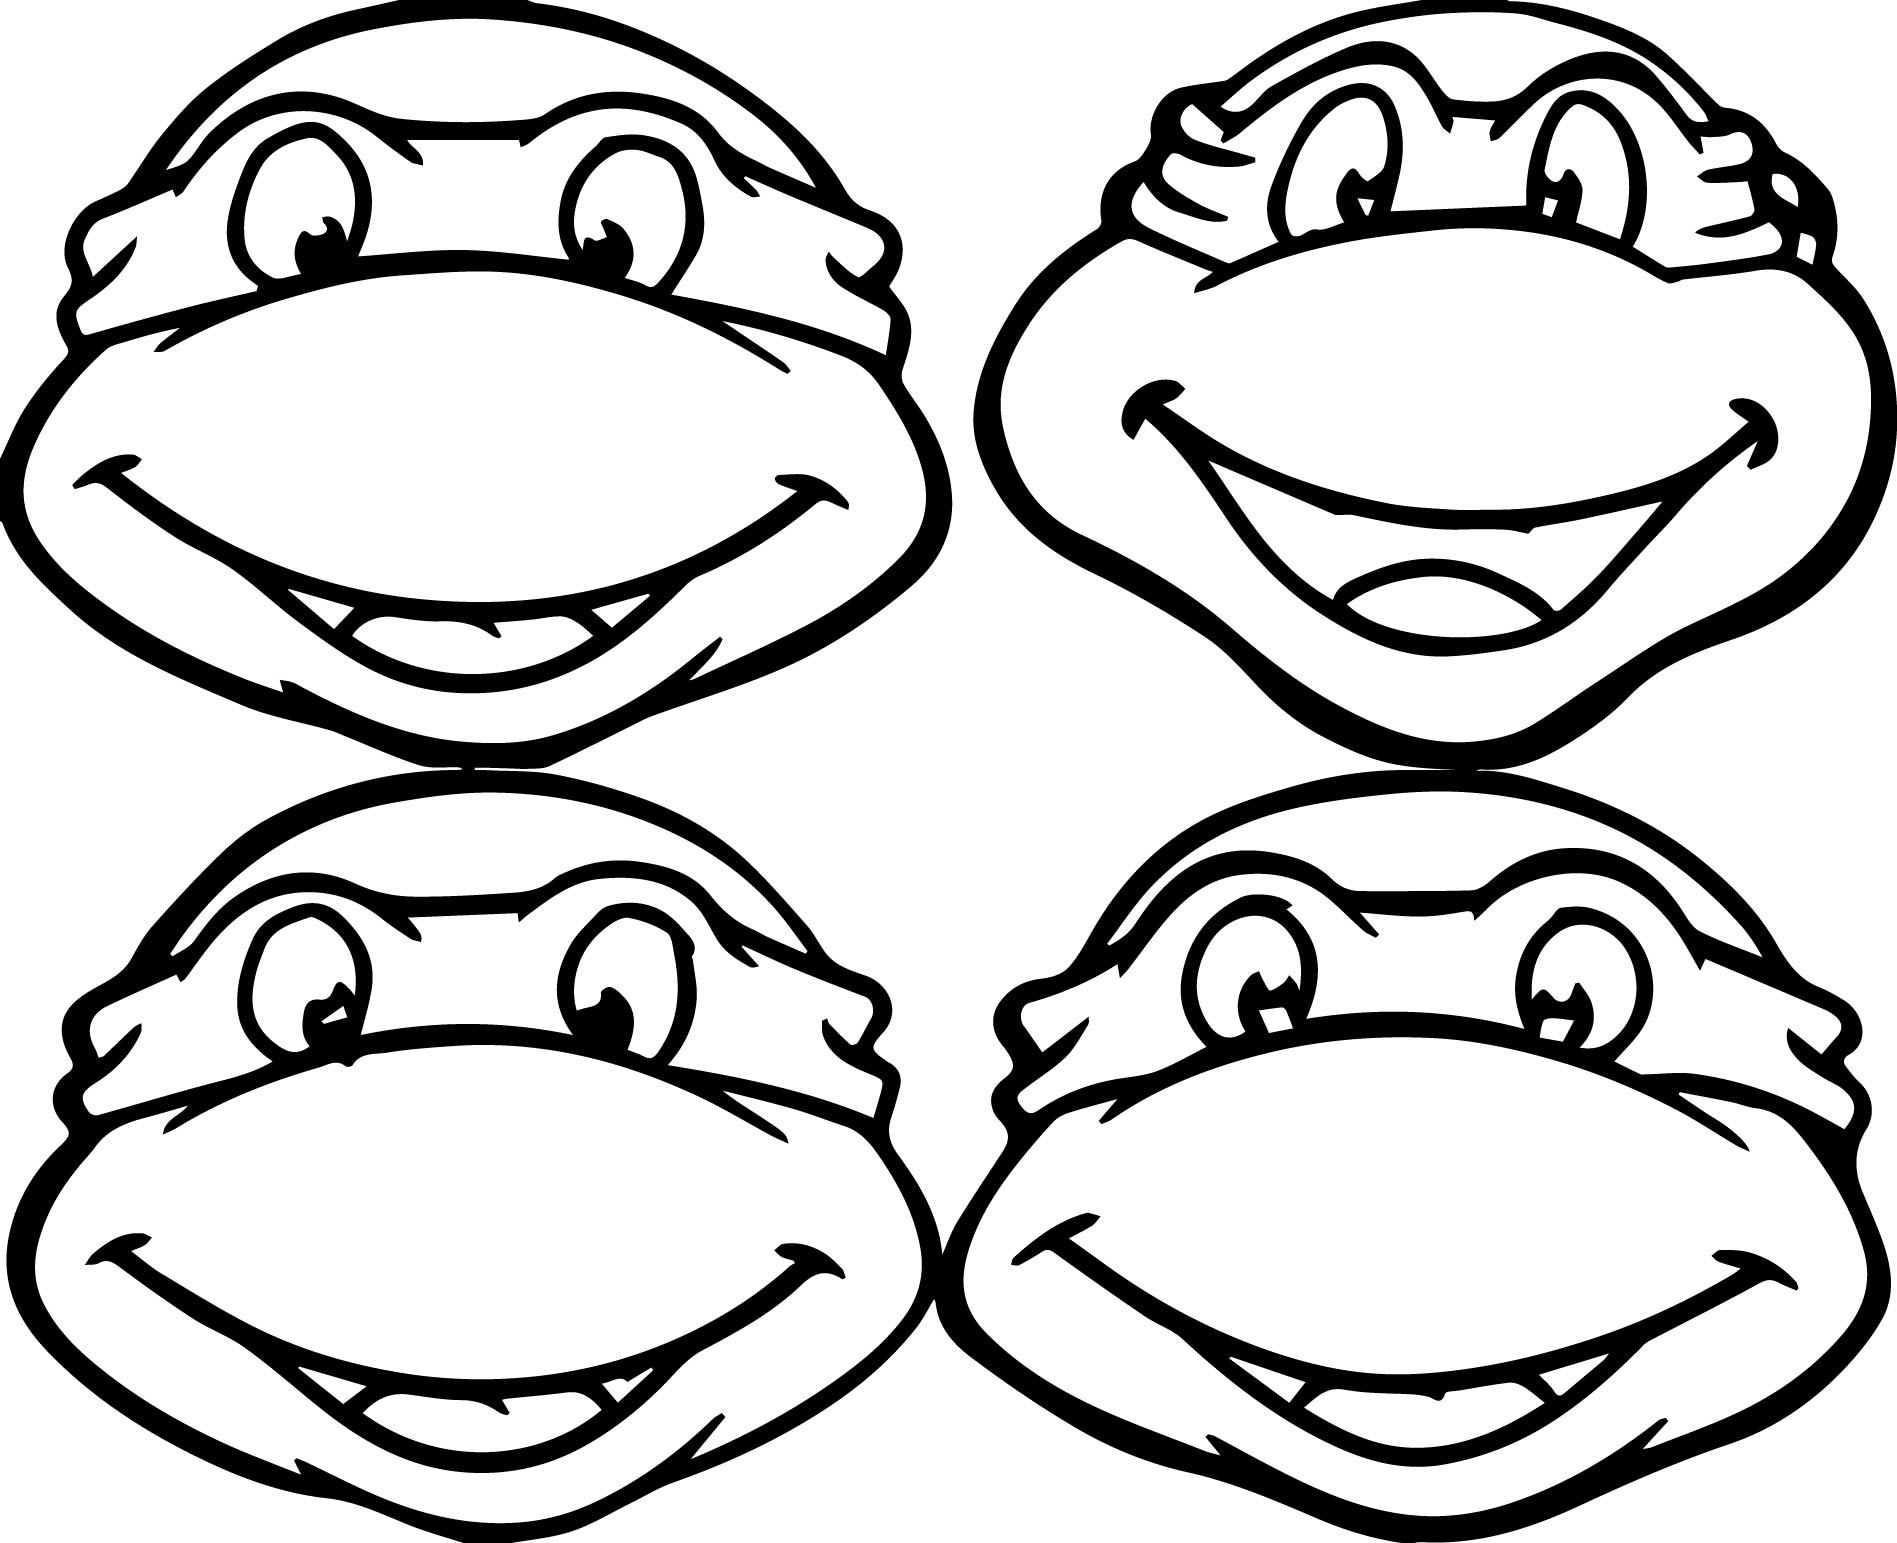 turtle pictures for coloring free turtle coloring pages for adults printable to turtle coloring pictures for